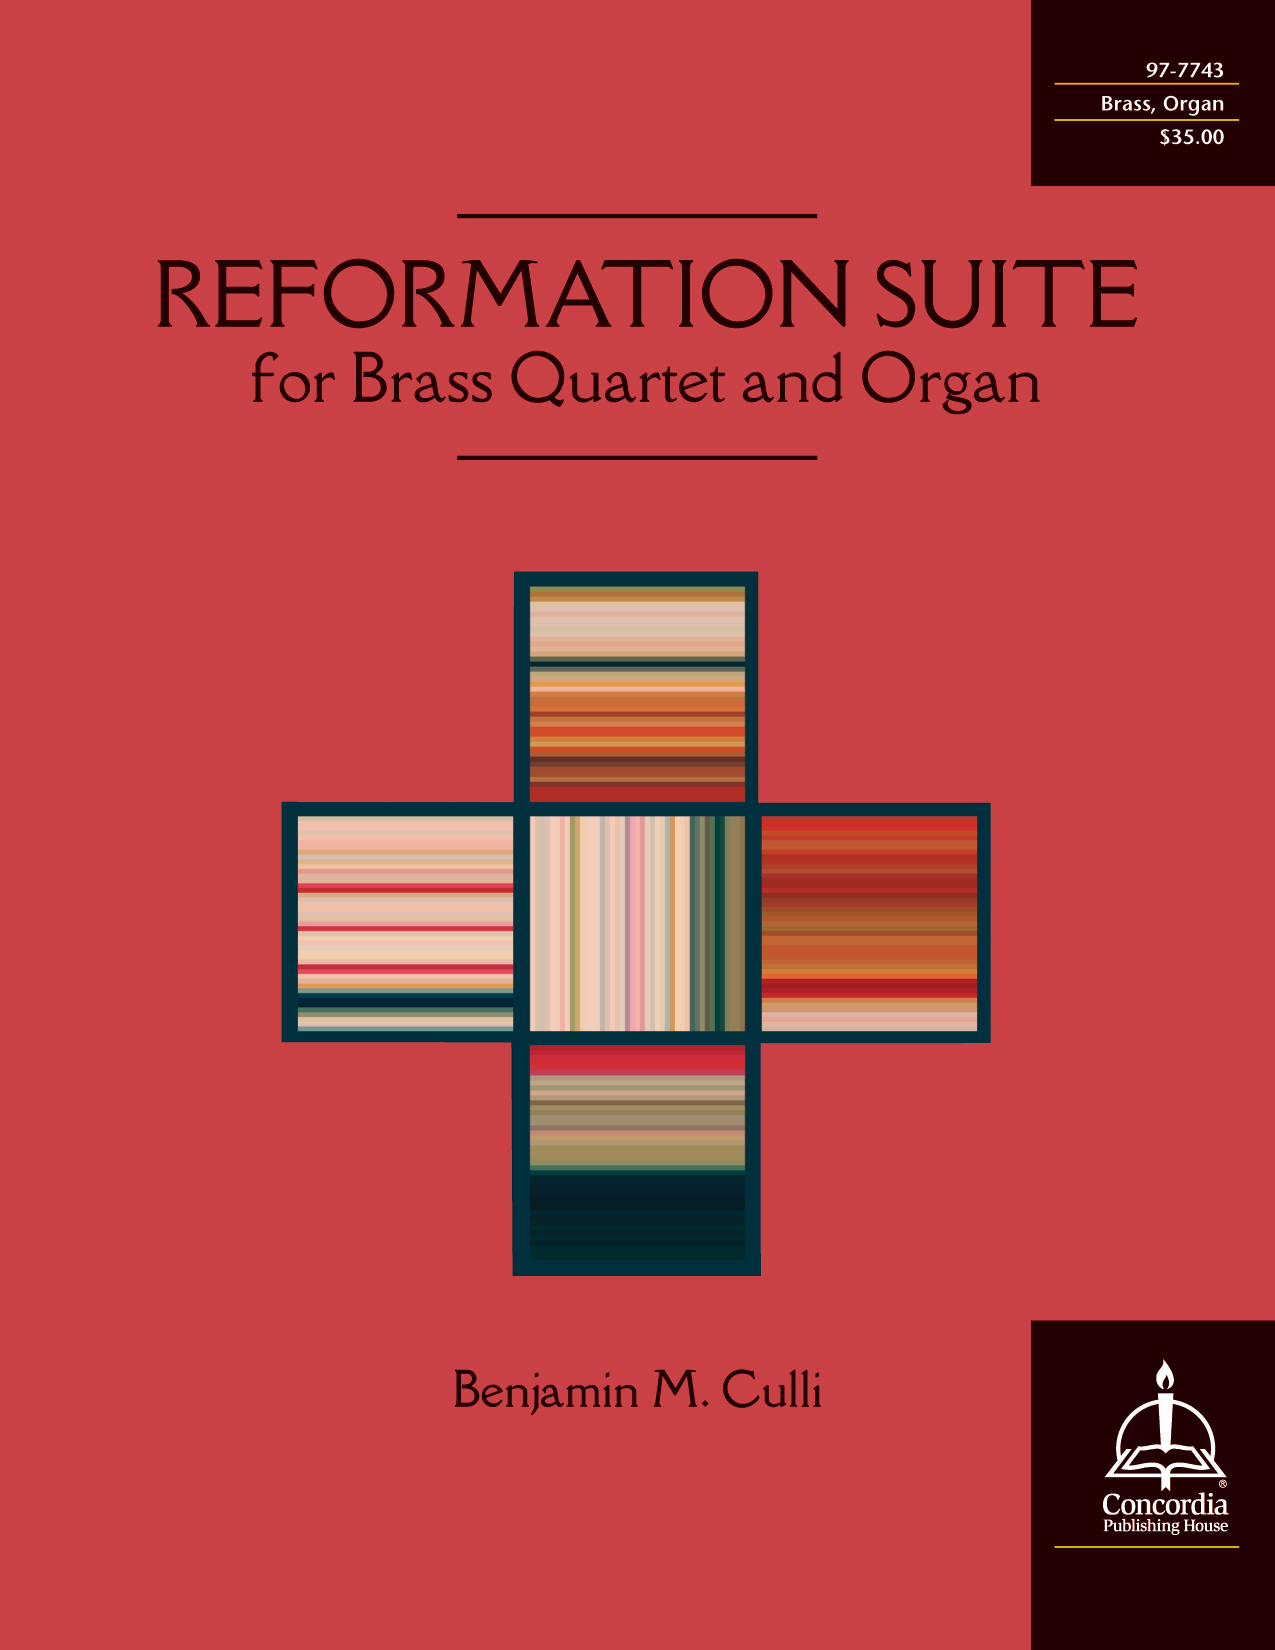 Reformation Suite for Brass Quartet and Organ